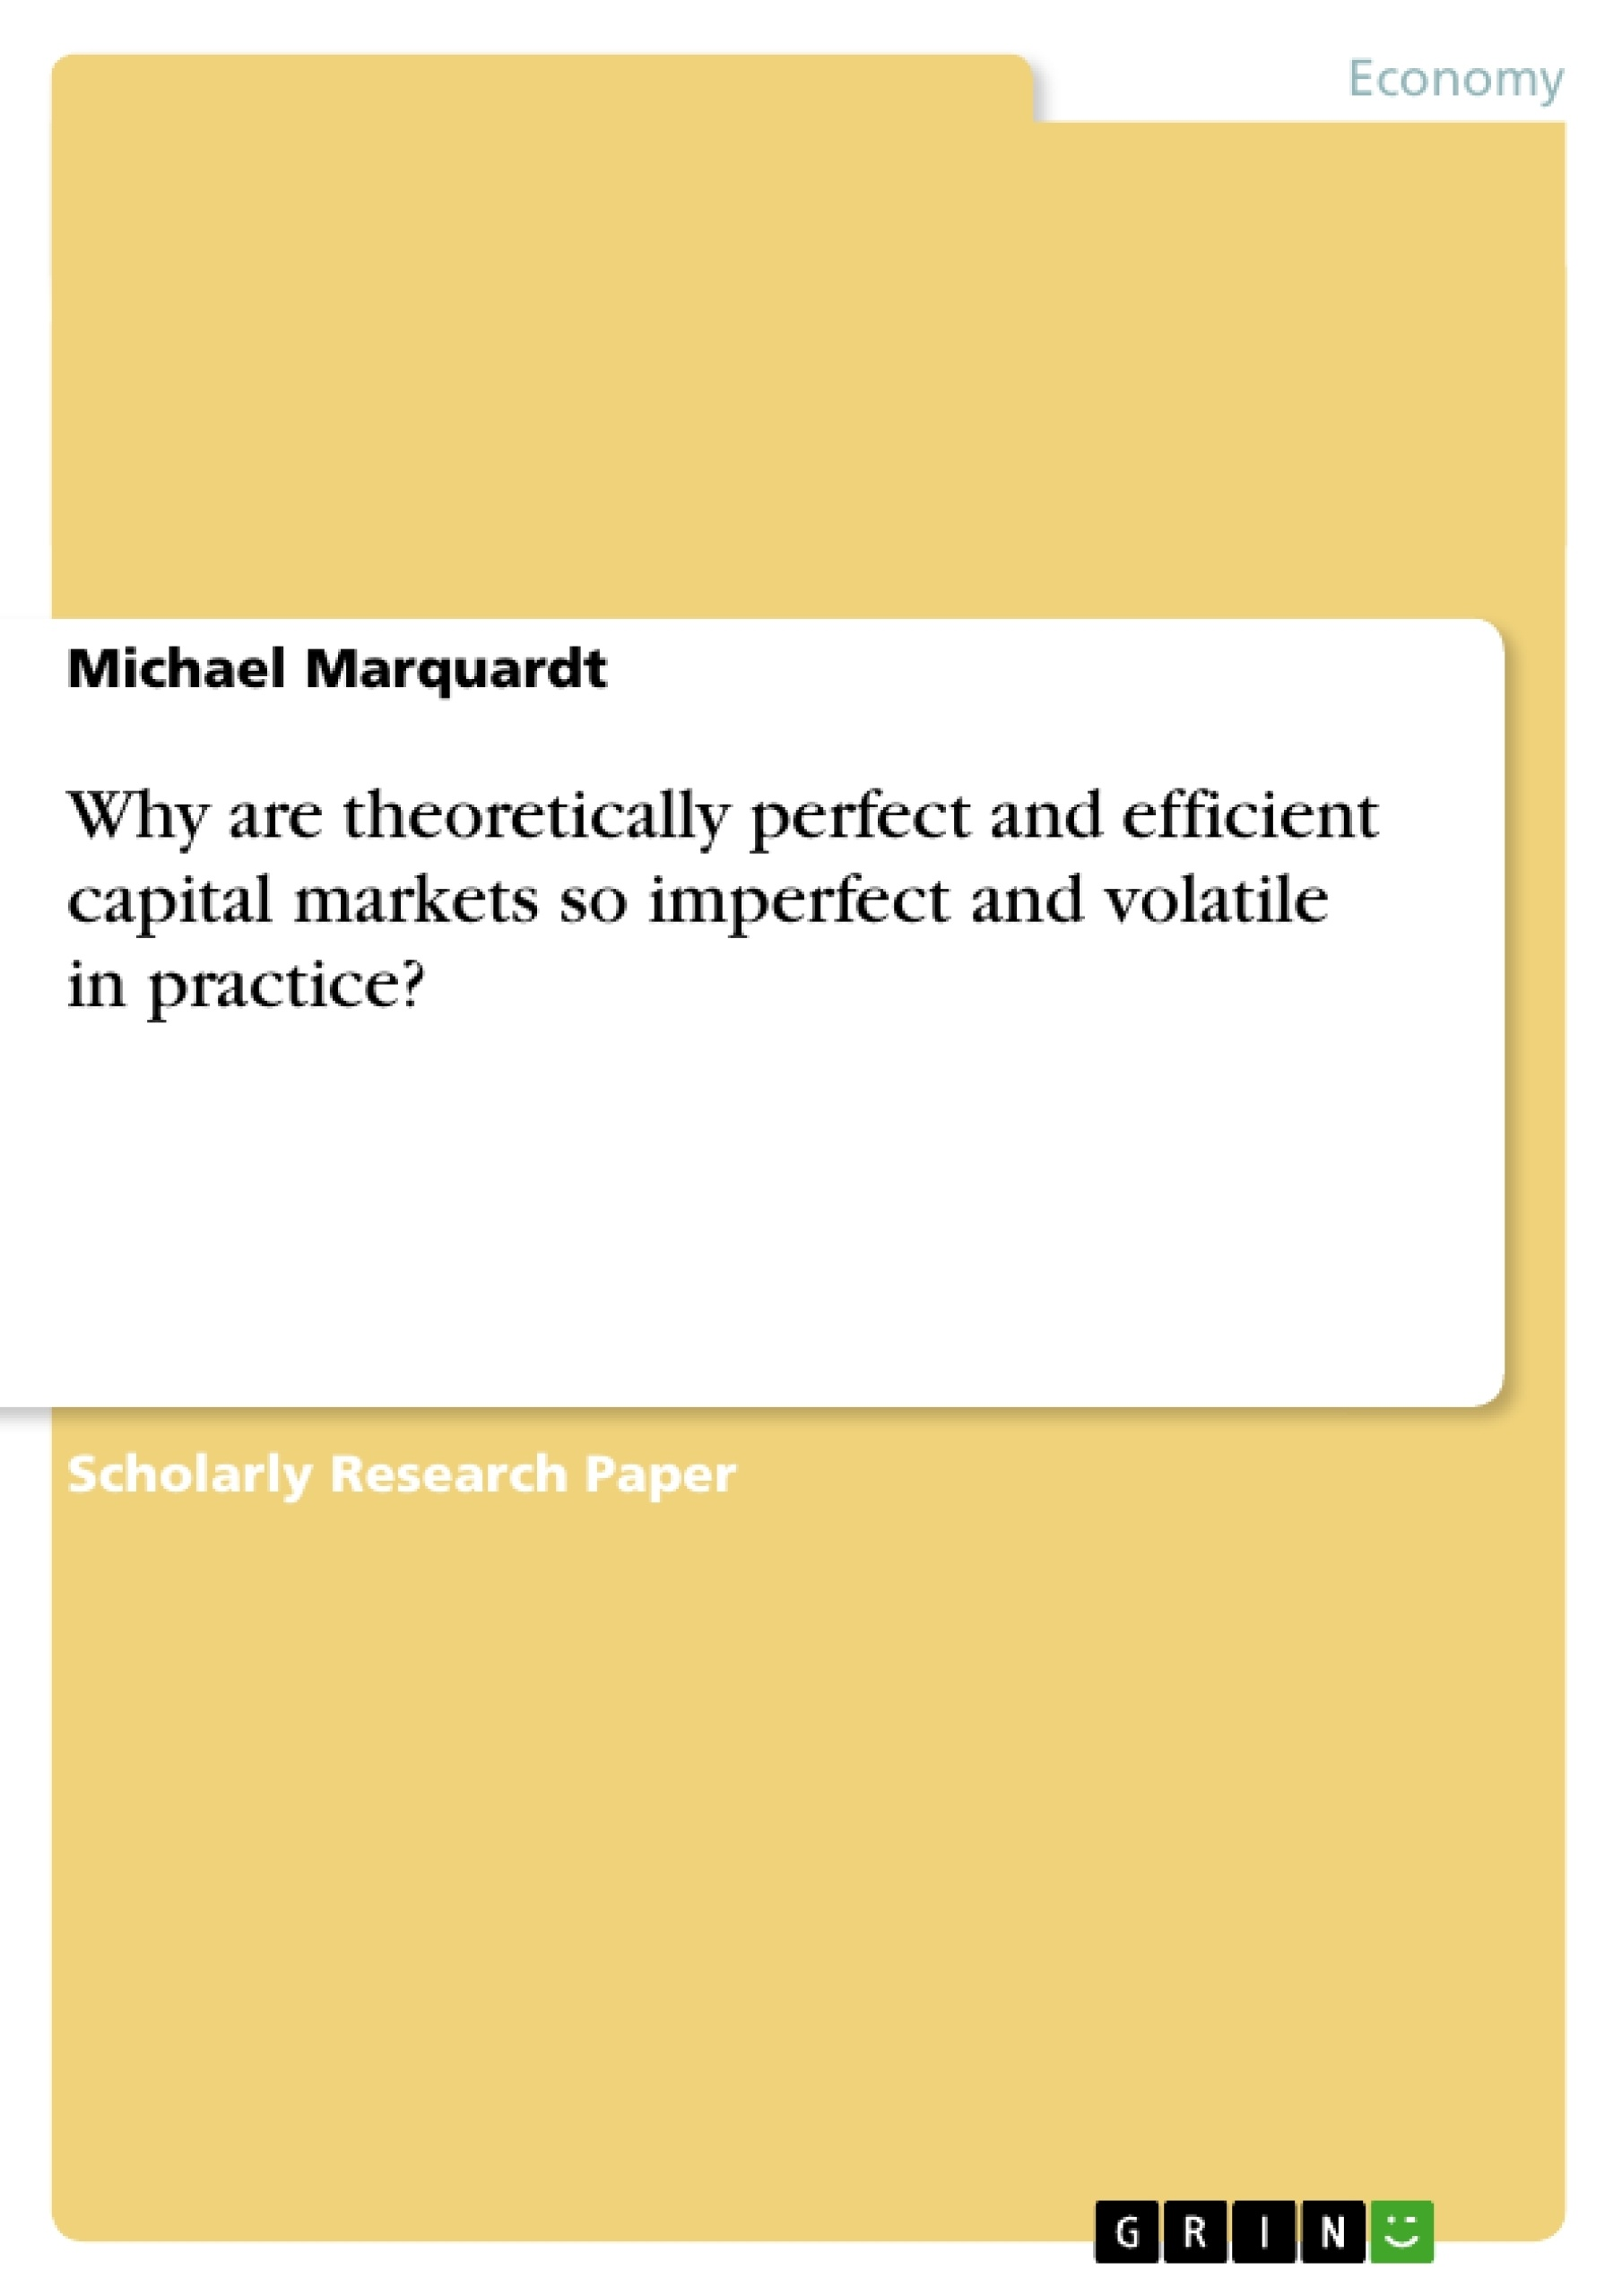 Title: Why are theoretically perfect and efficient capital markets so imperfect and volatile in practice?